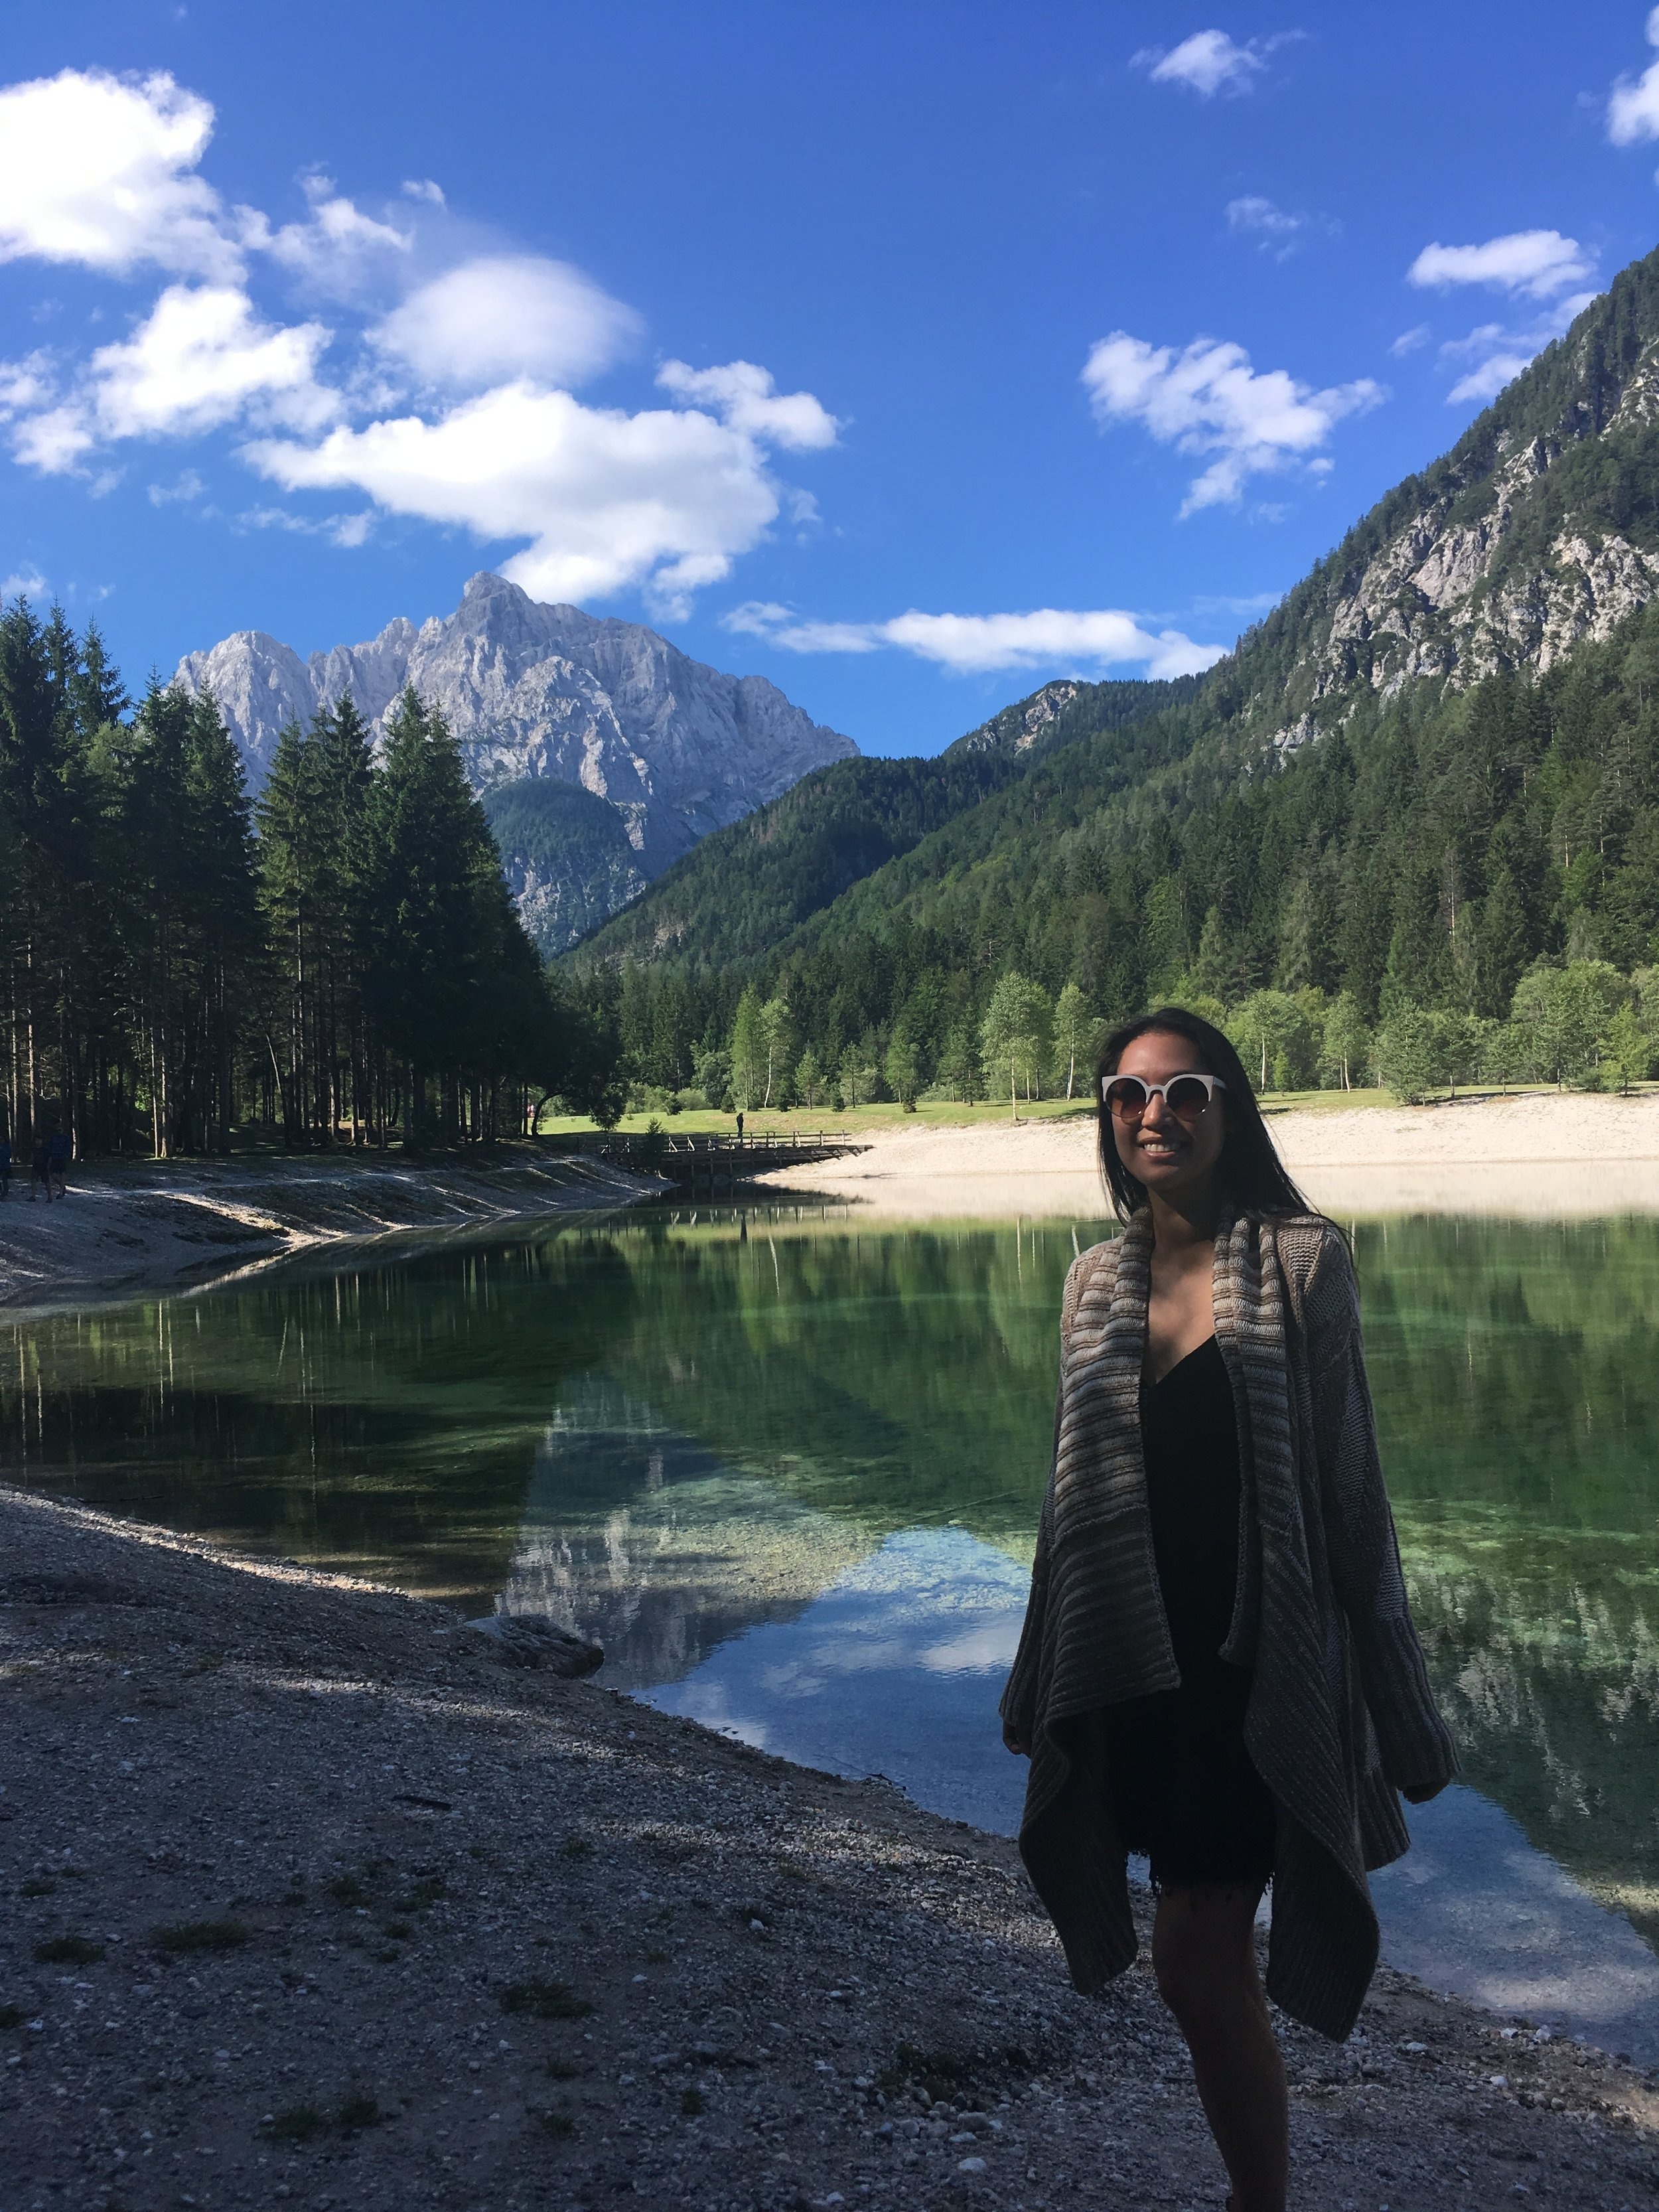 No, this is not Austria. This is Slovenia.